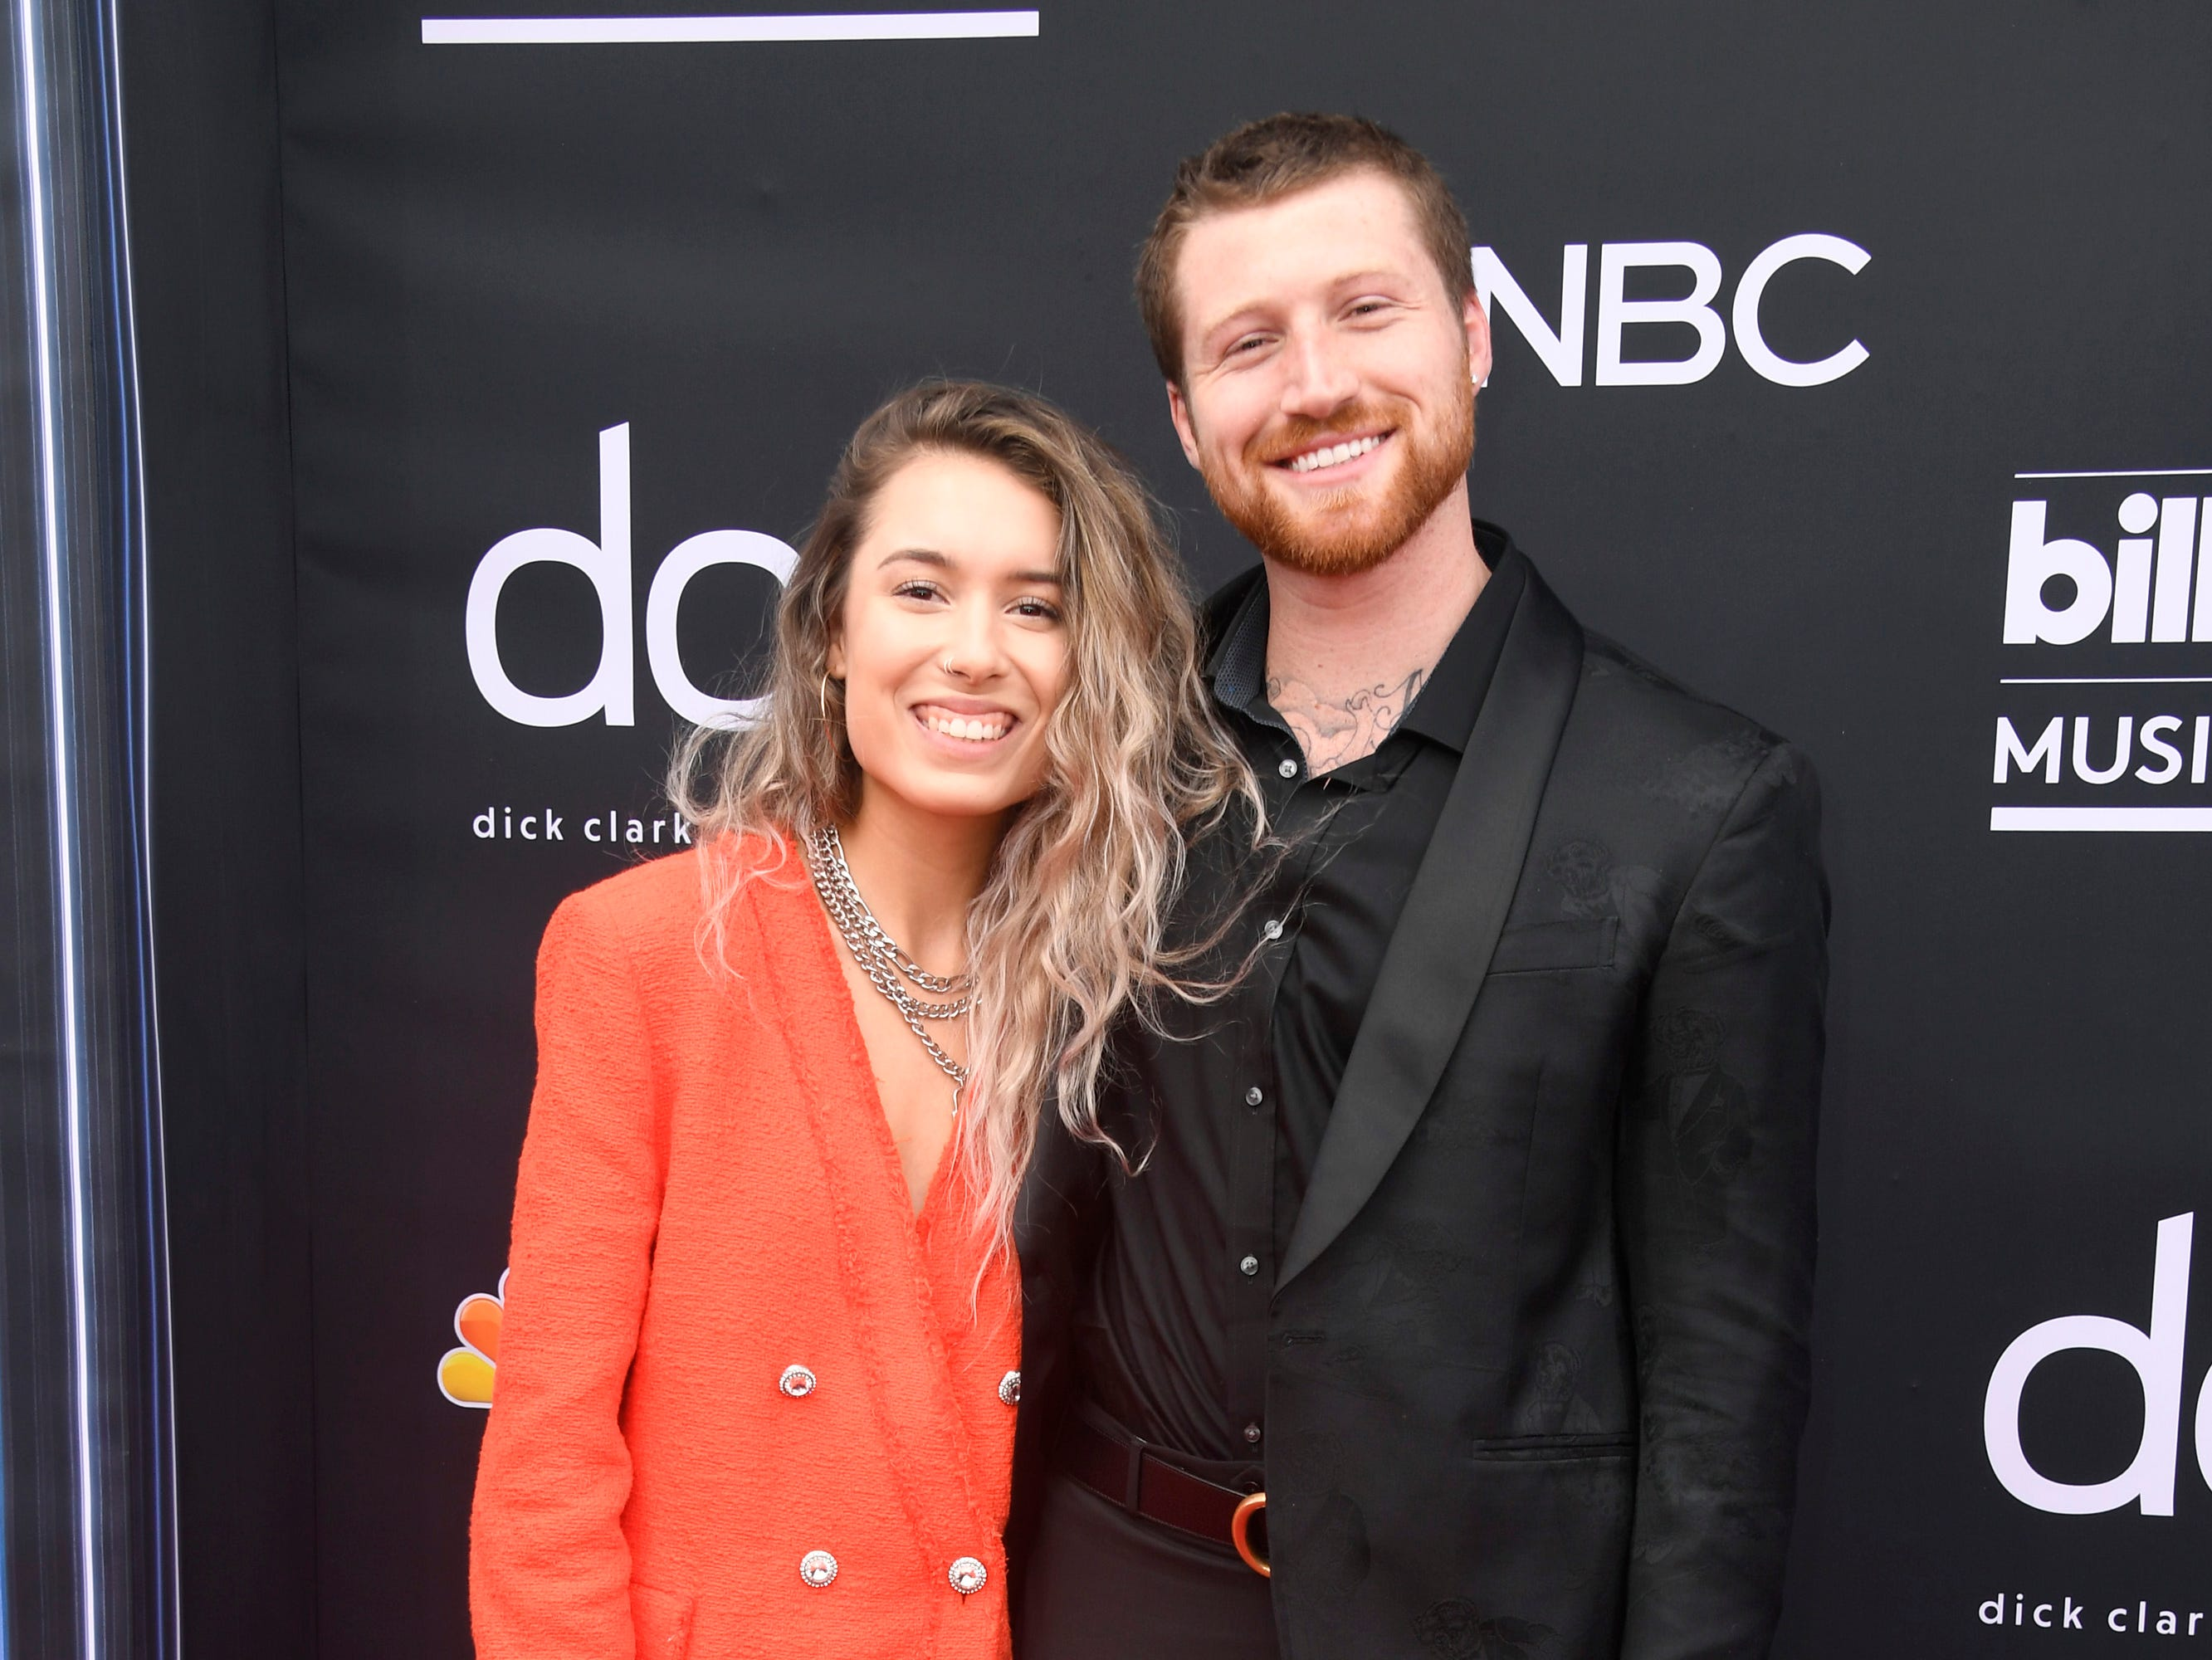 (L-R) Kristen McAtee and Scotty Sire attend the 2019 Billboard Music Awards at MGM Grand Garden Arena on May 01, 2019 in Las Vegas, Nevada.